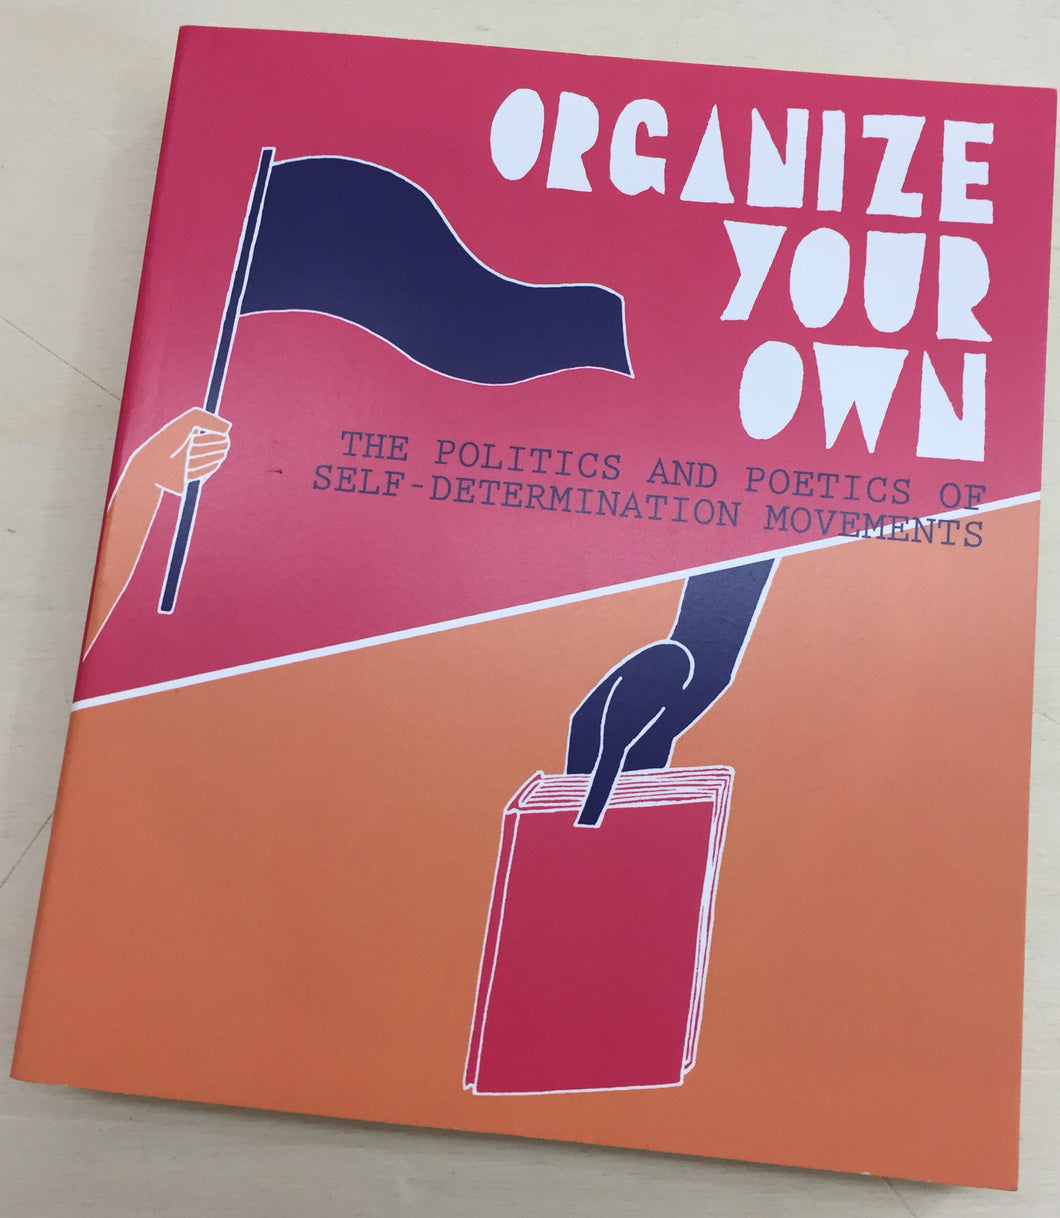 Organize Your Own: The Politics and Poetics of Self-Determination Movements (Sobergscove)